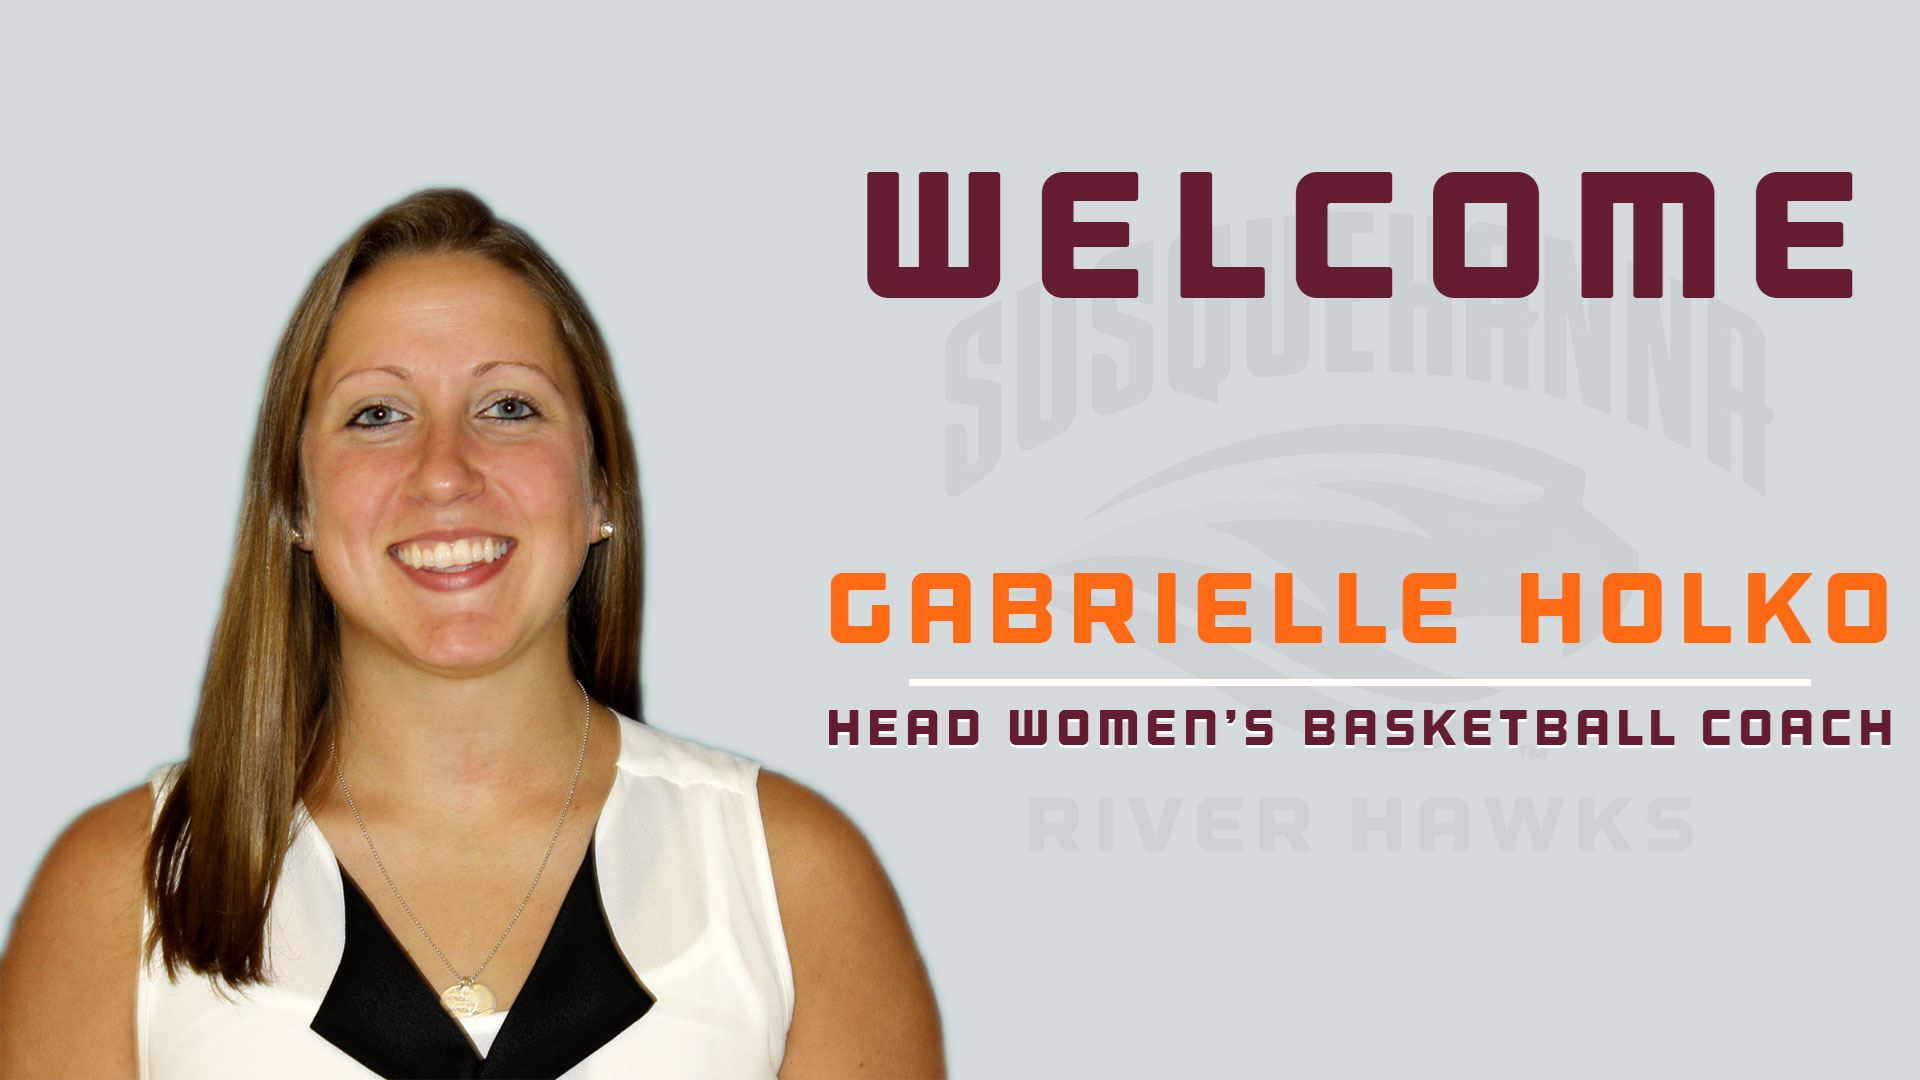 Holko Named Susquehanna Women's Basketball Coach - Women's Hoop Dirt